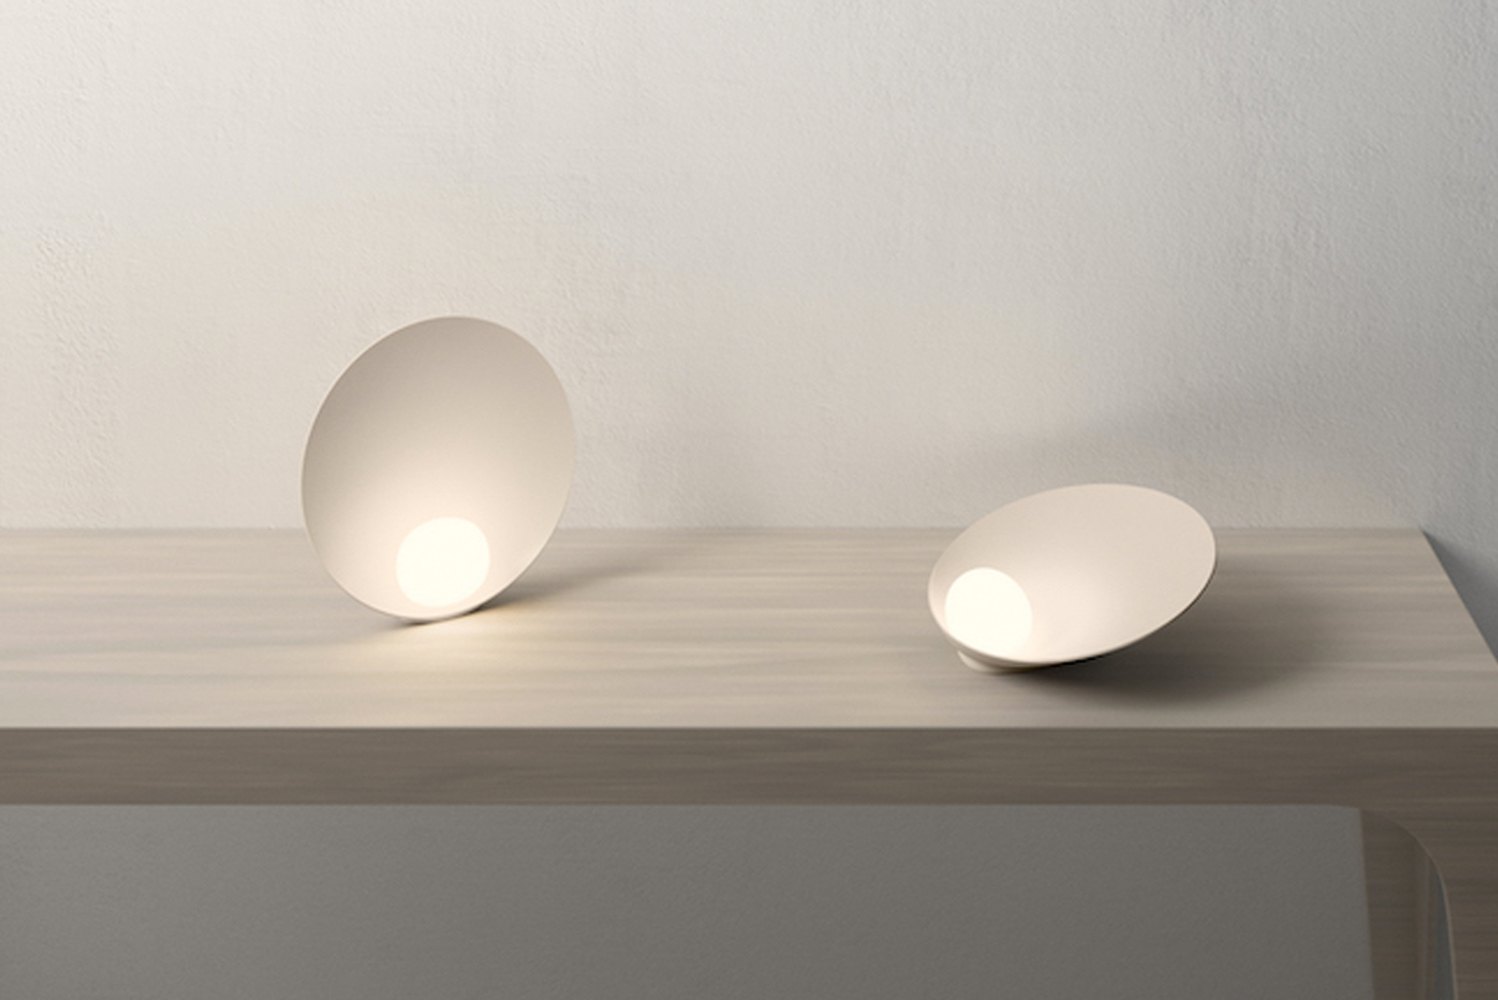 Introducing Musa, the latest lighting collection offered by Vibia and designed by Note Design Studio.